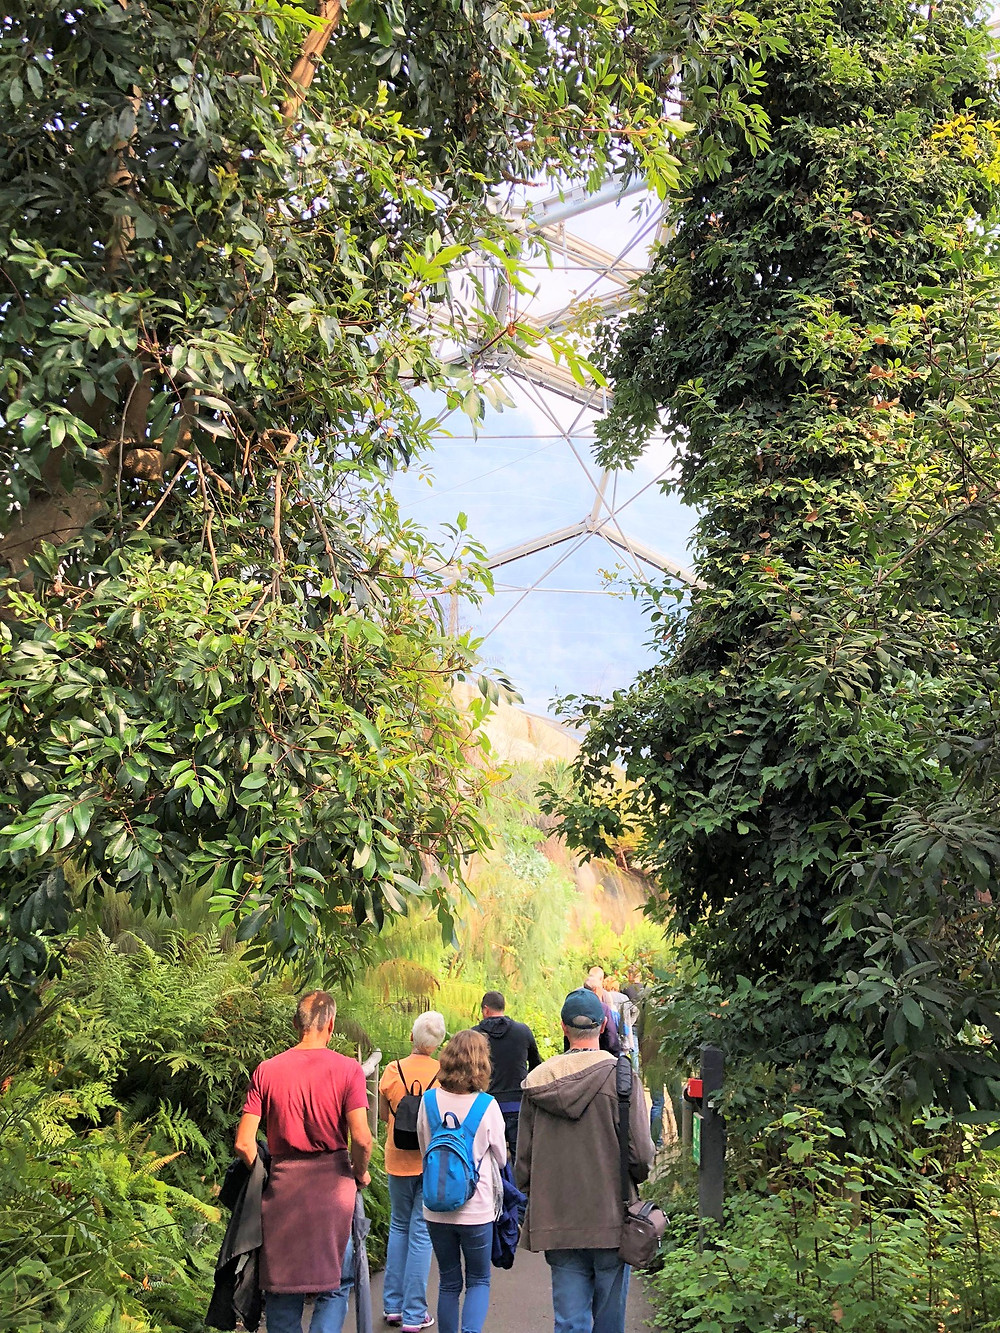 Looking up at the top of the Mediterranean Biome is home to over 1,300 different plant species from California, South Africa and Western Australia